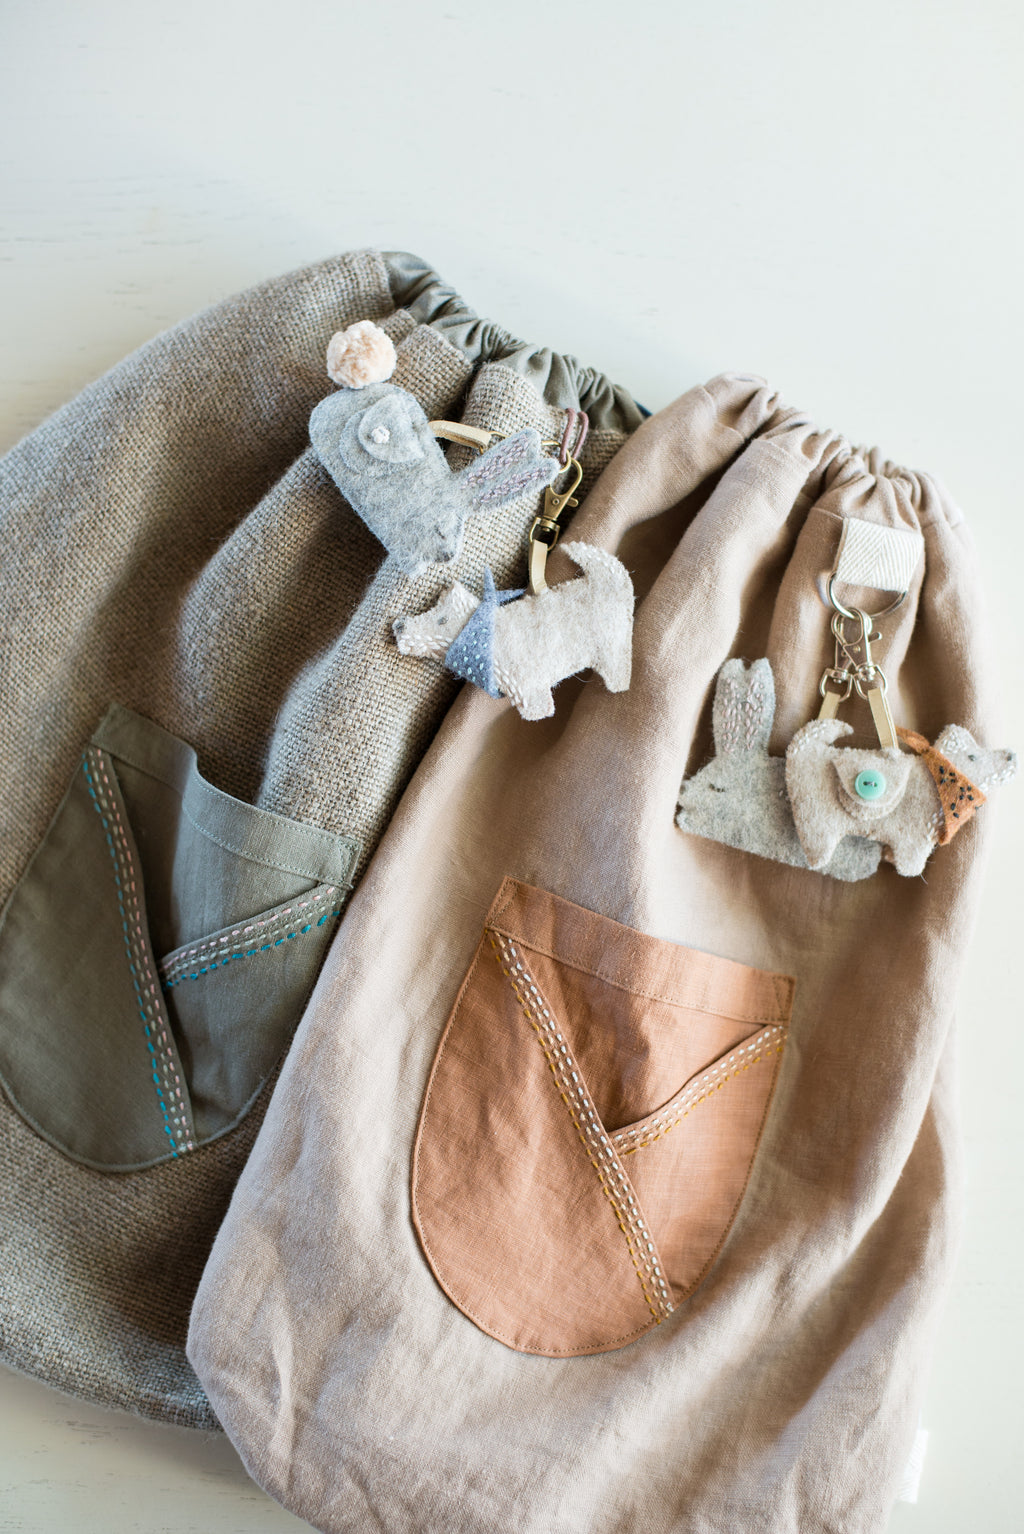 Making #7: Desert. Child's backpack and animal keyrings